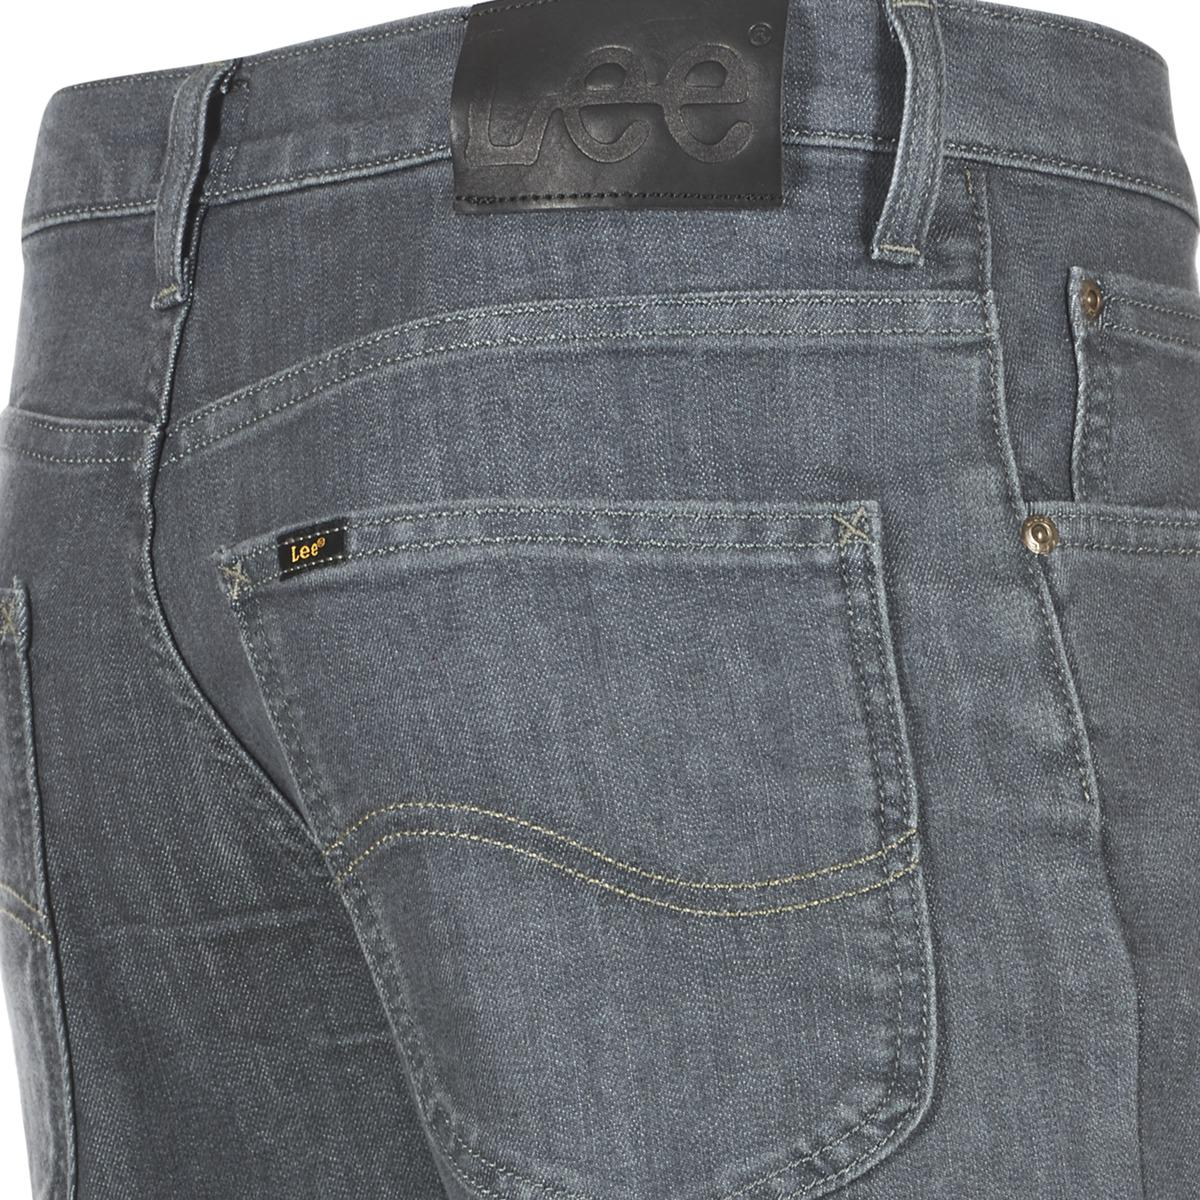 17a2458b Lee Jeans Brooklyn Straight Jeans in Gray for Men - Lyst